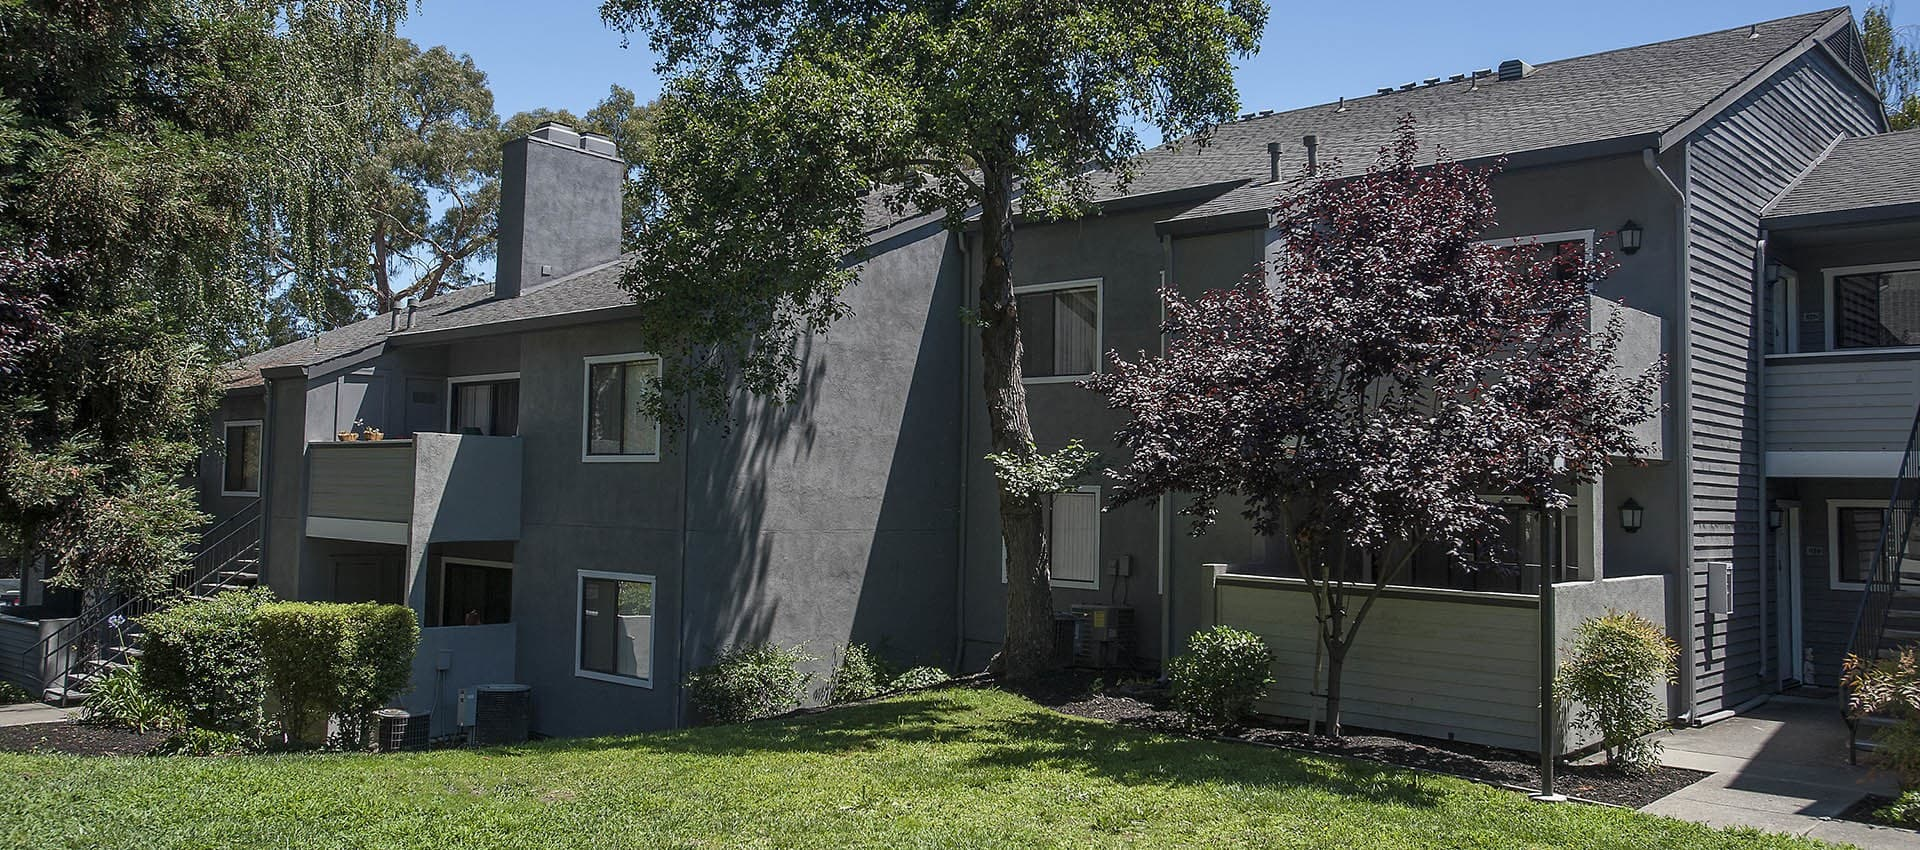 Landscaping With Mature Trees at Plum Tree Apartment Homes in Martinez, California